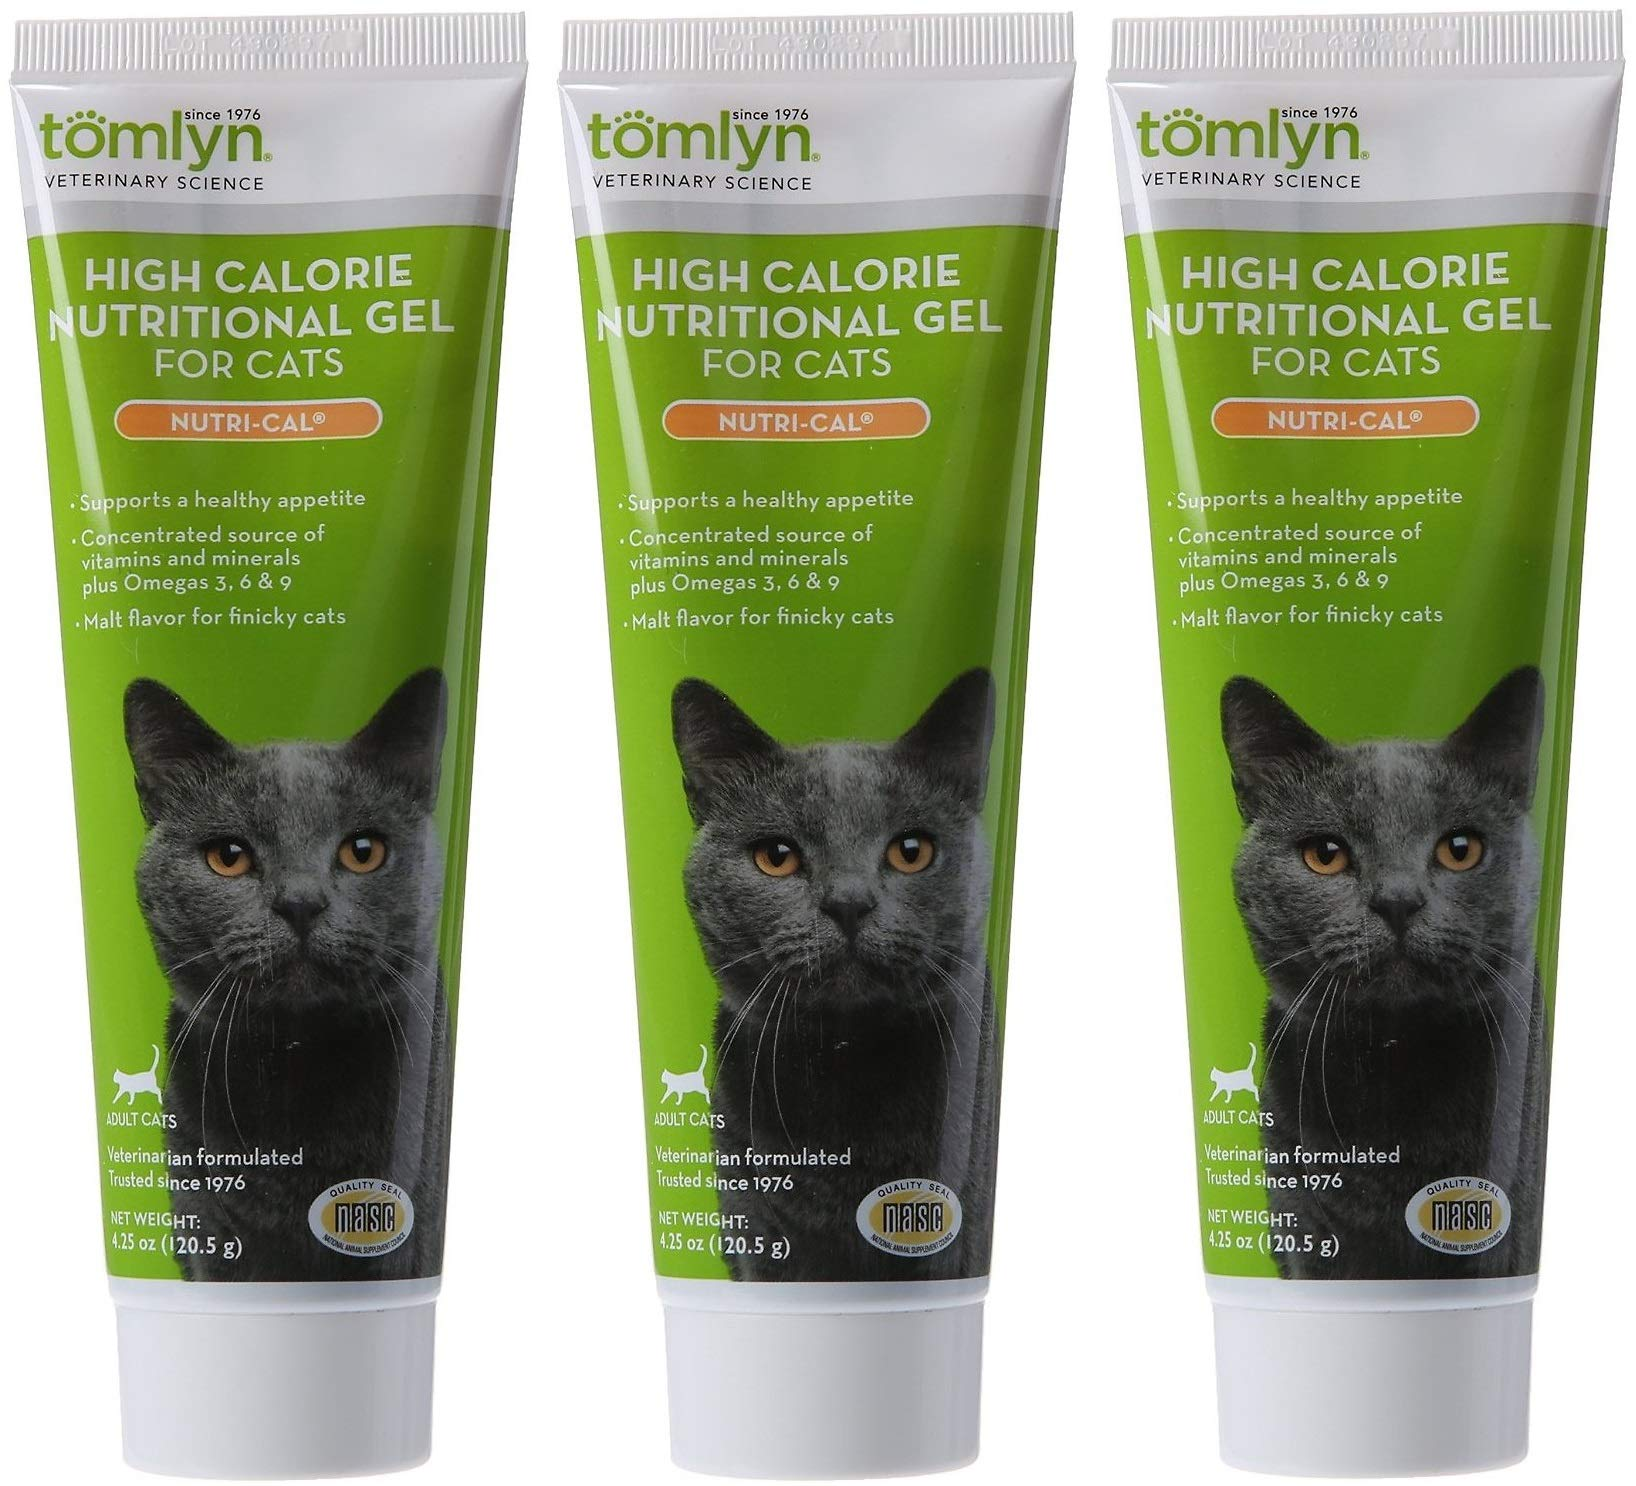 Tomlyn 3 Pack of Nutri-Cal, 4.25 Ounces each, High Calorie Nutritional Gel for Cats by OKThings